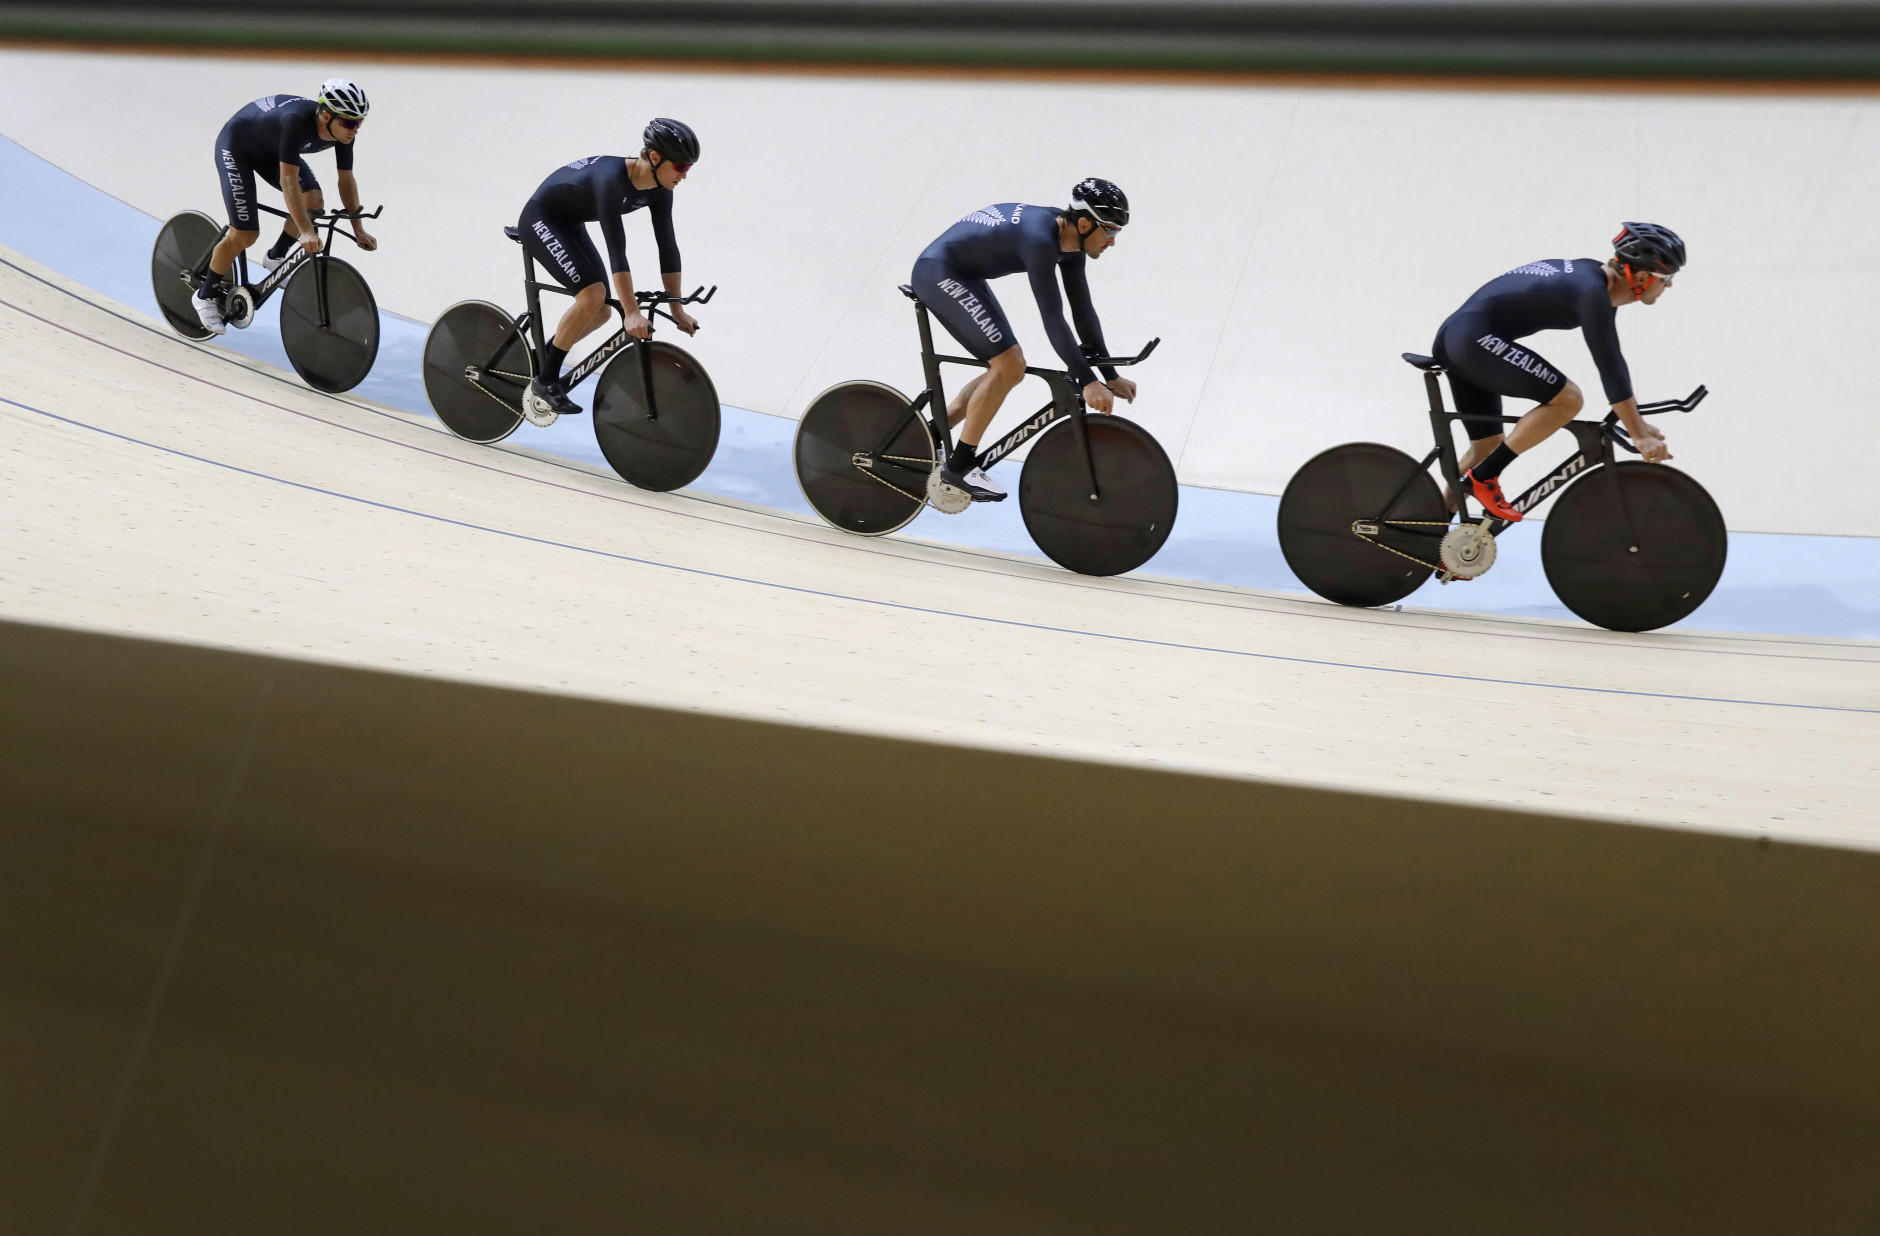 Members of the New Zealand men's track cycling team round the track during a training session inside the Rio Olympic Velodrome in advance of the 2016 Olympic Games in Rio de Janeiro, Brazil, Wednesday, Aug. 3, 2016. (AP Photo/Patrick Semansky)